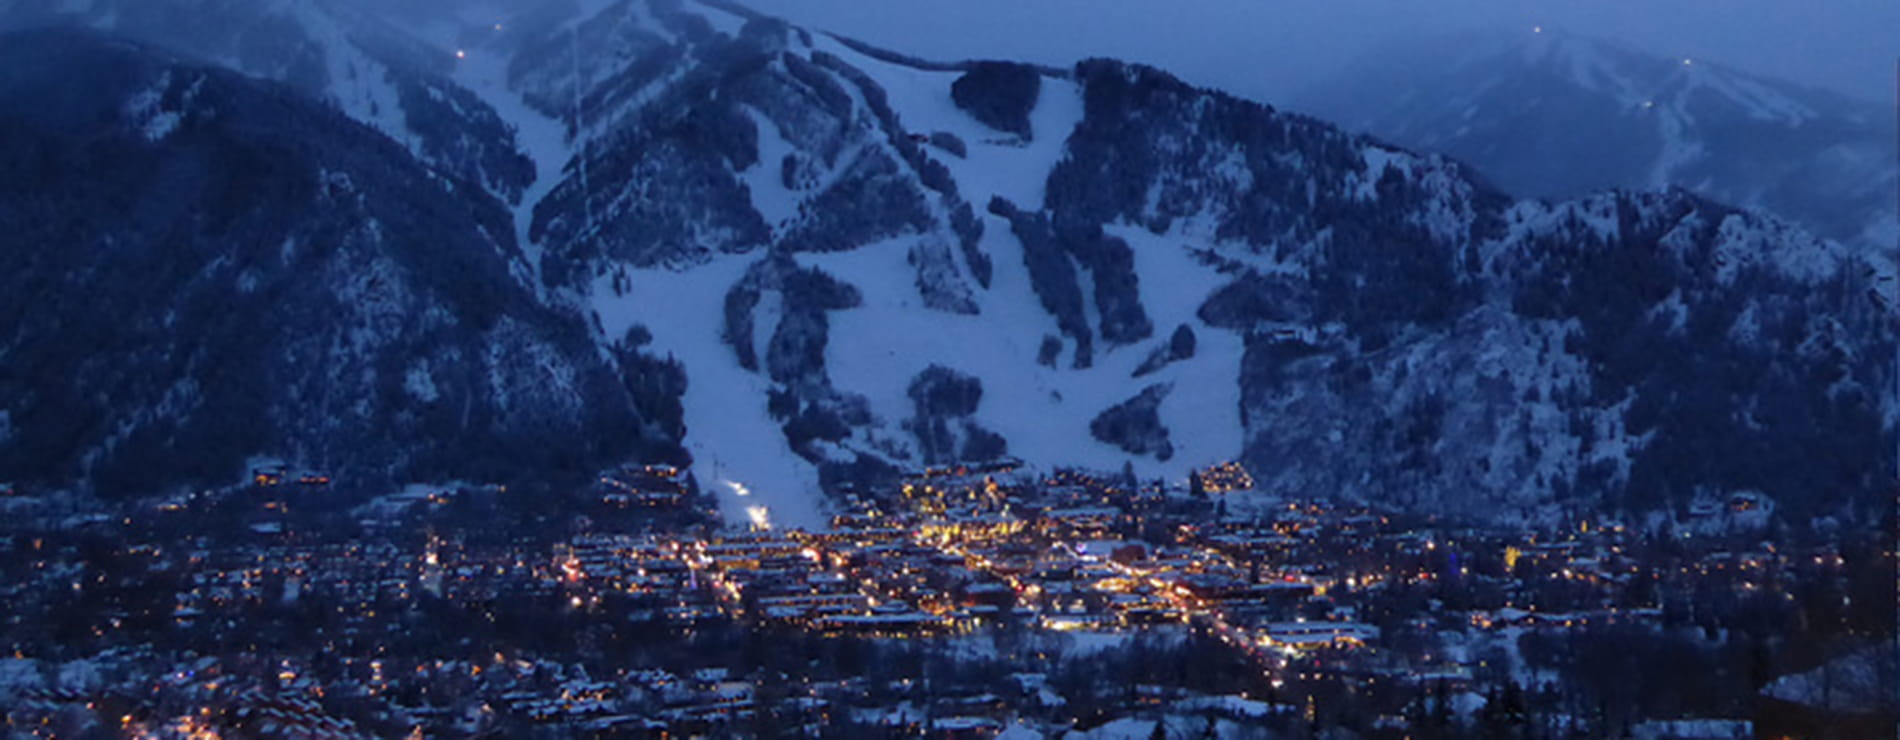 Aspen at Night- Ski Runs - Large | Limelight Hotels | Aspen